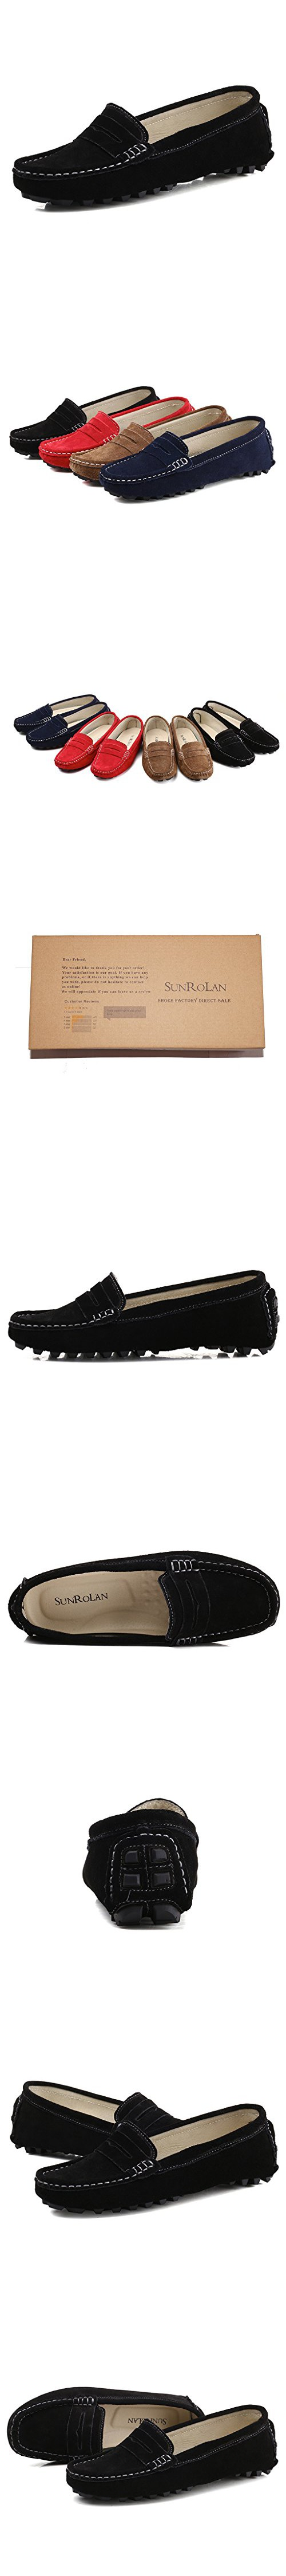 a70b81543d6 808-2hei8.5 SUNROLAN Rebacca Women s Suede Leather Driving Moccasins Slip-On  Penny